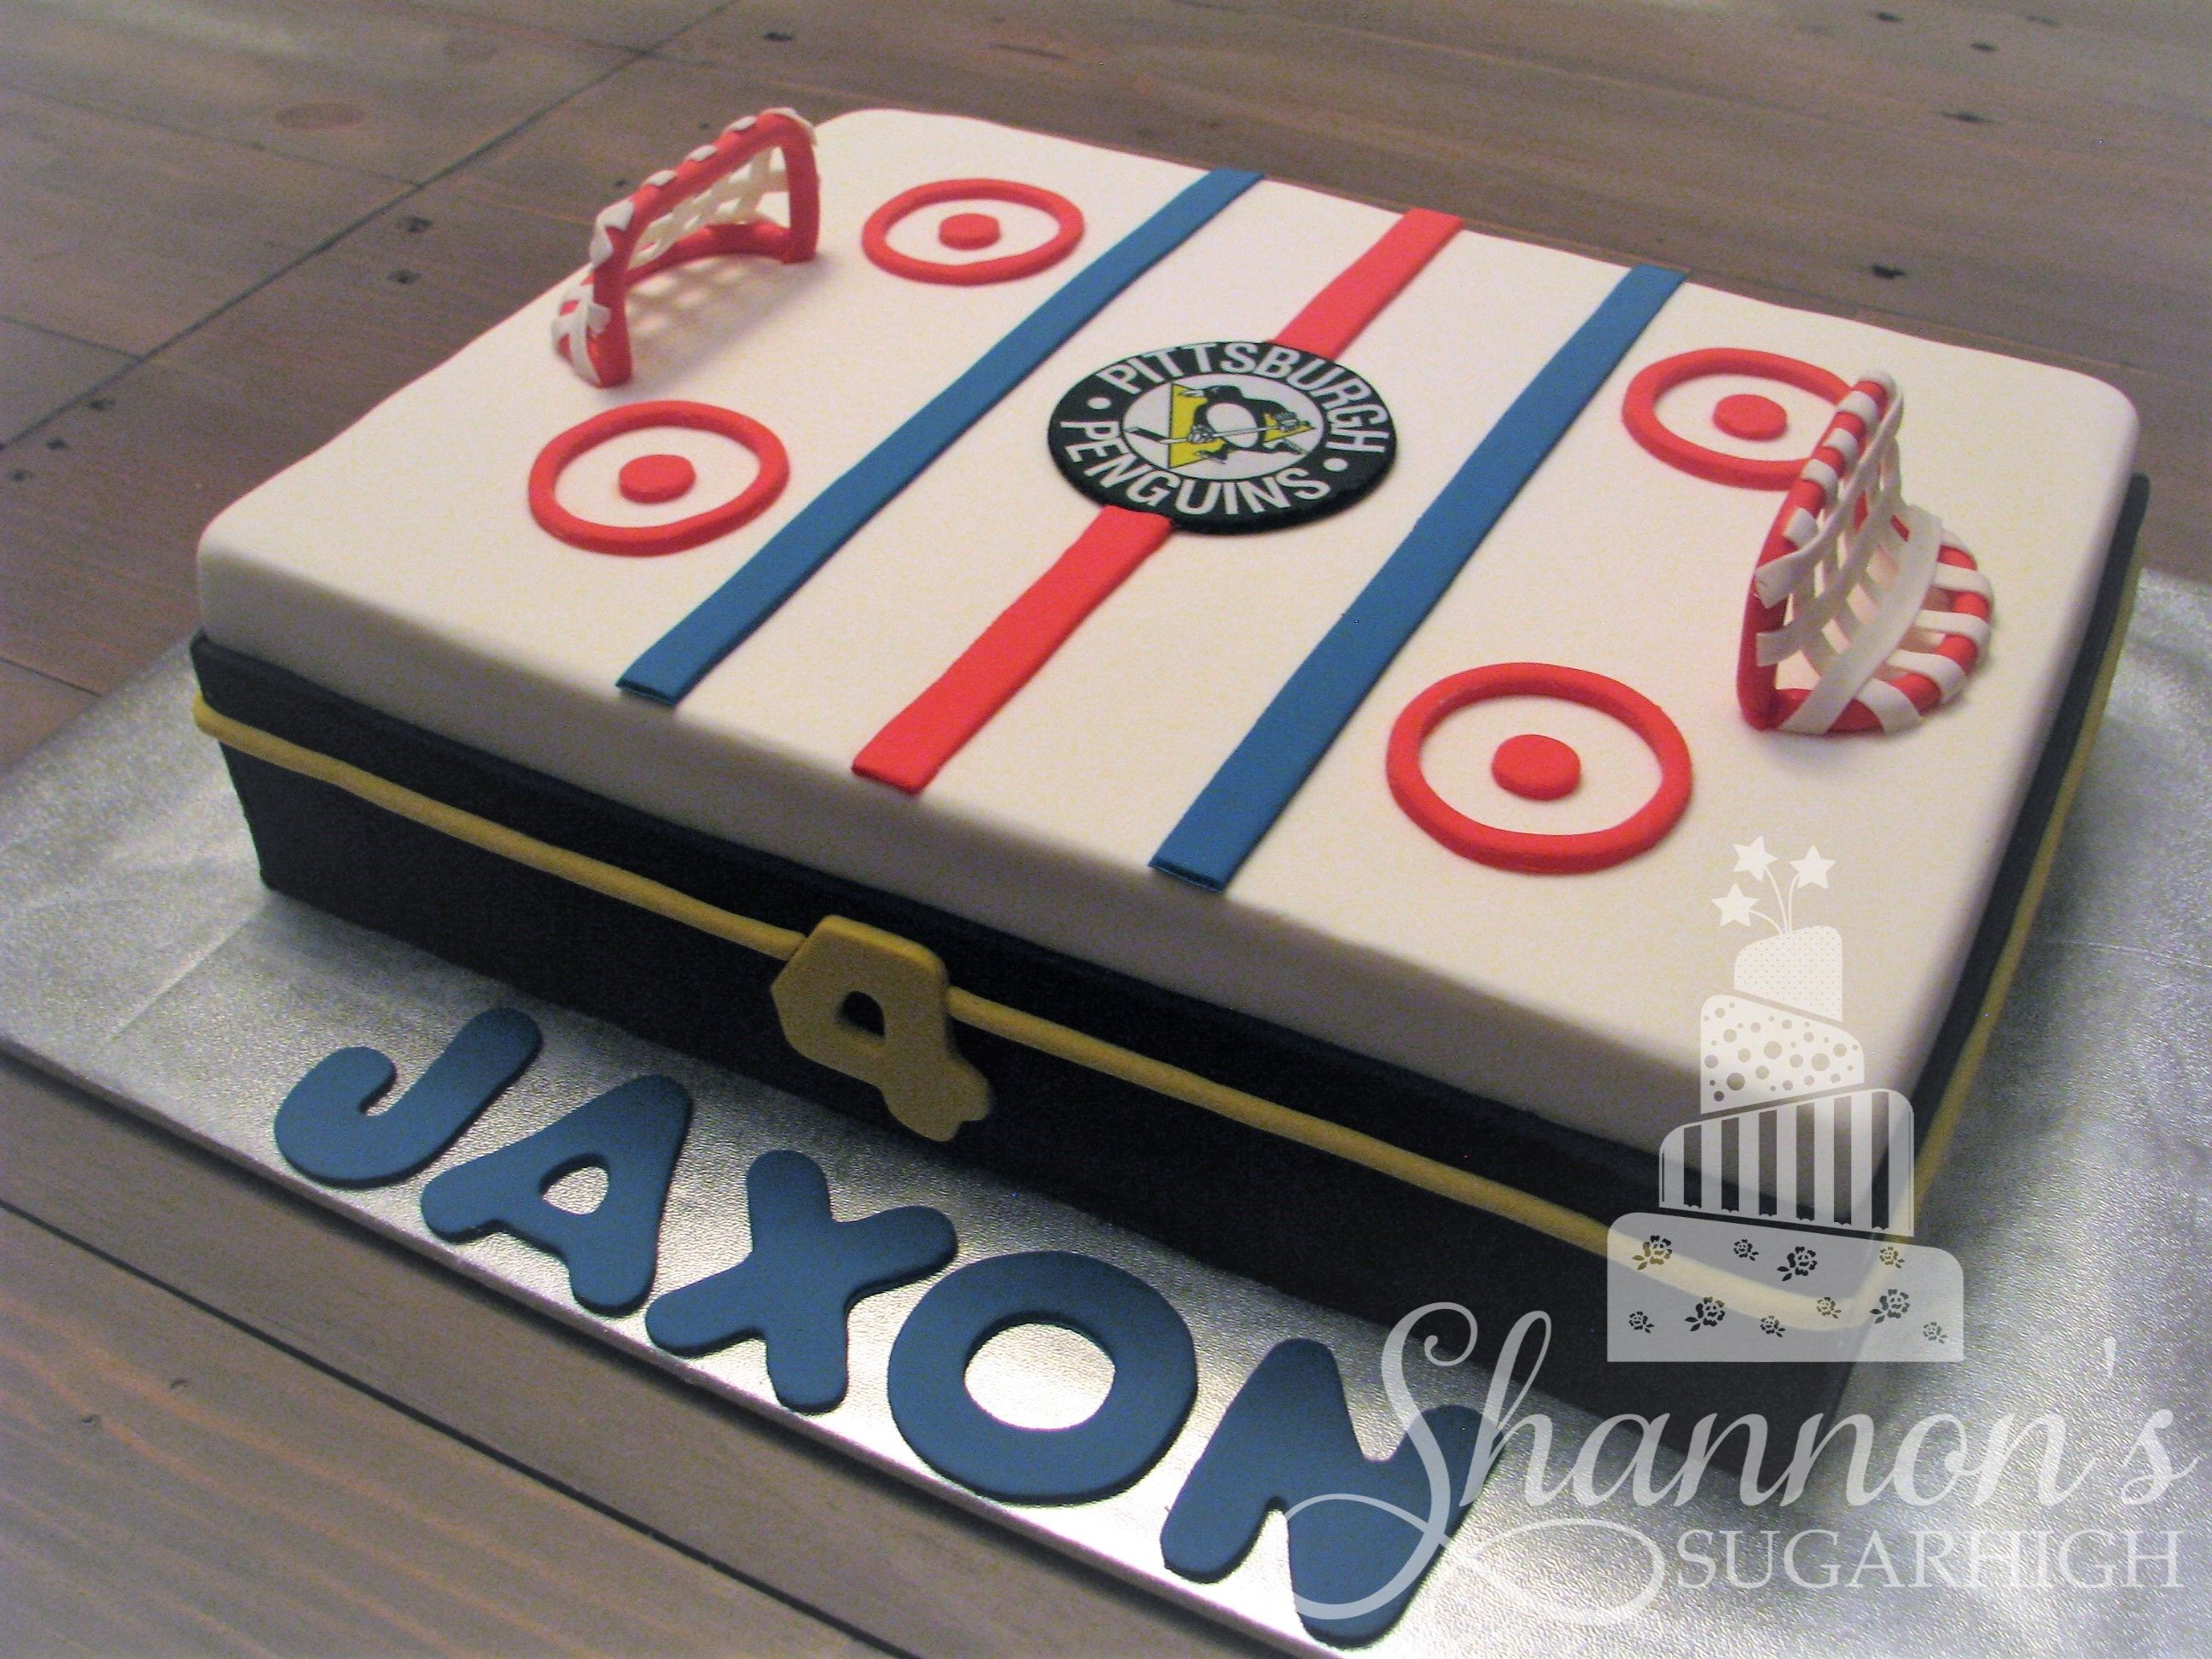 Fondant covered hockey rink cake for a 4 year old who loves the